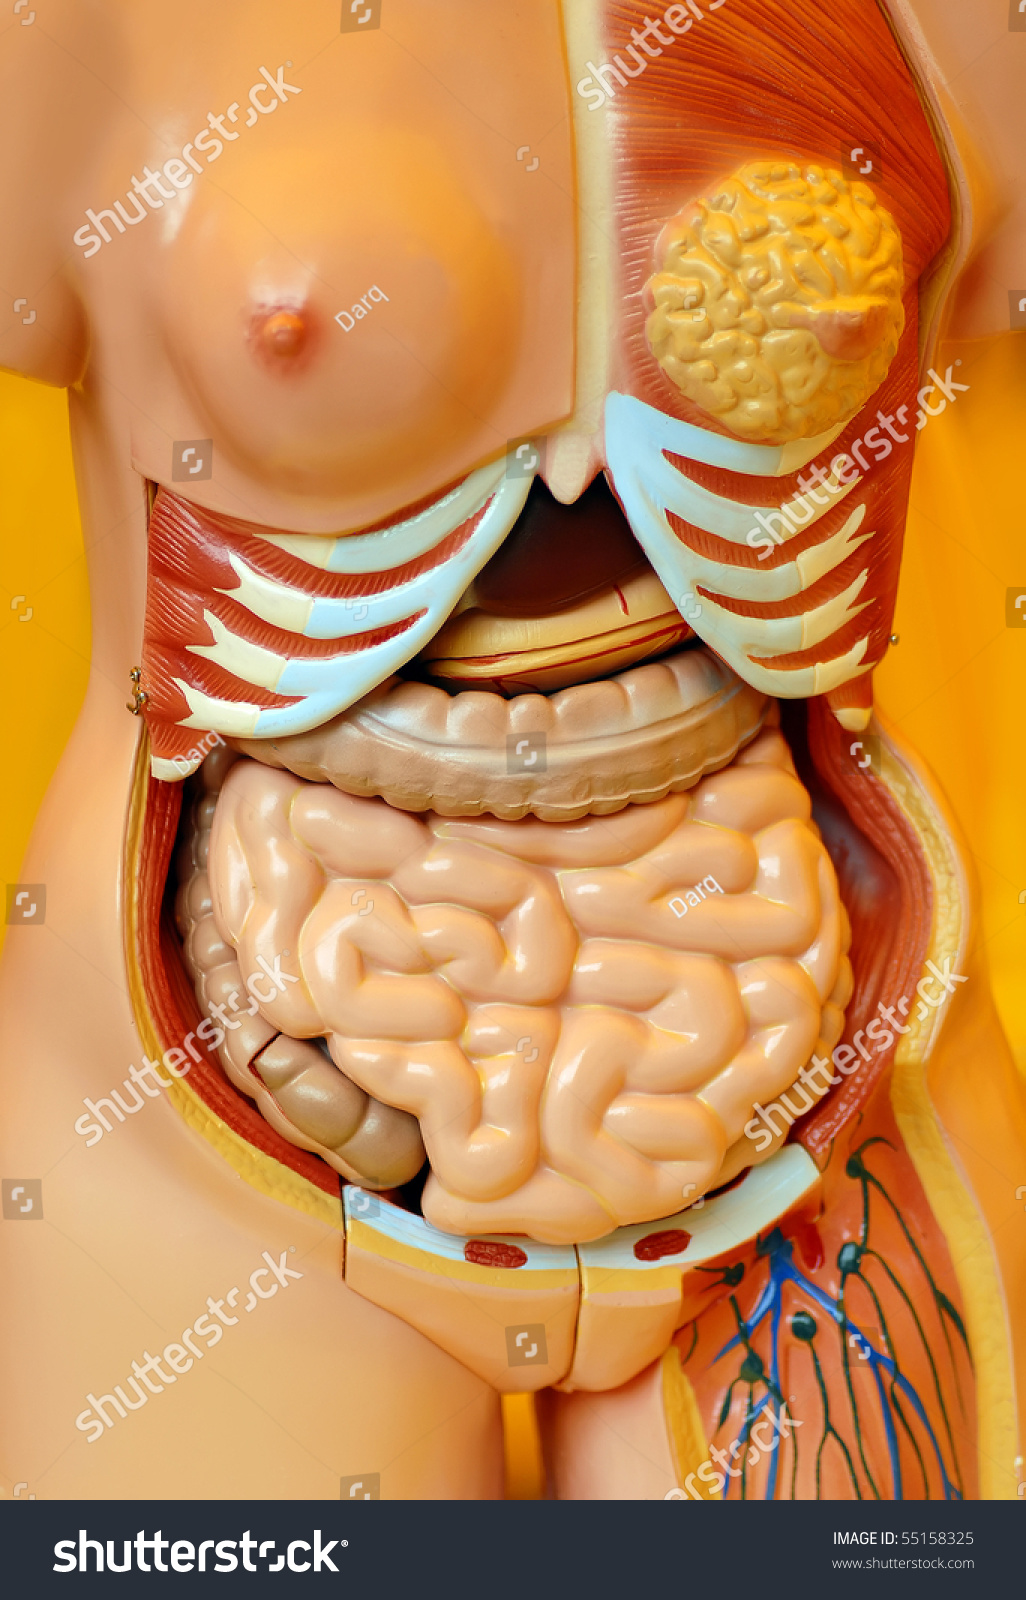 Organs Inside Female Body Learning Artificial Stock Photo (Edit Now ...